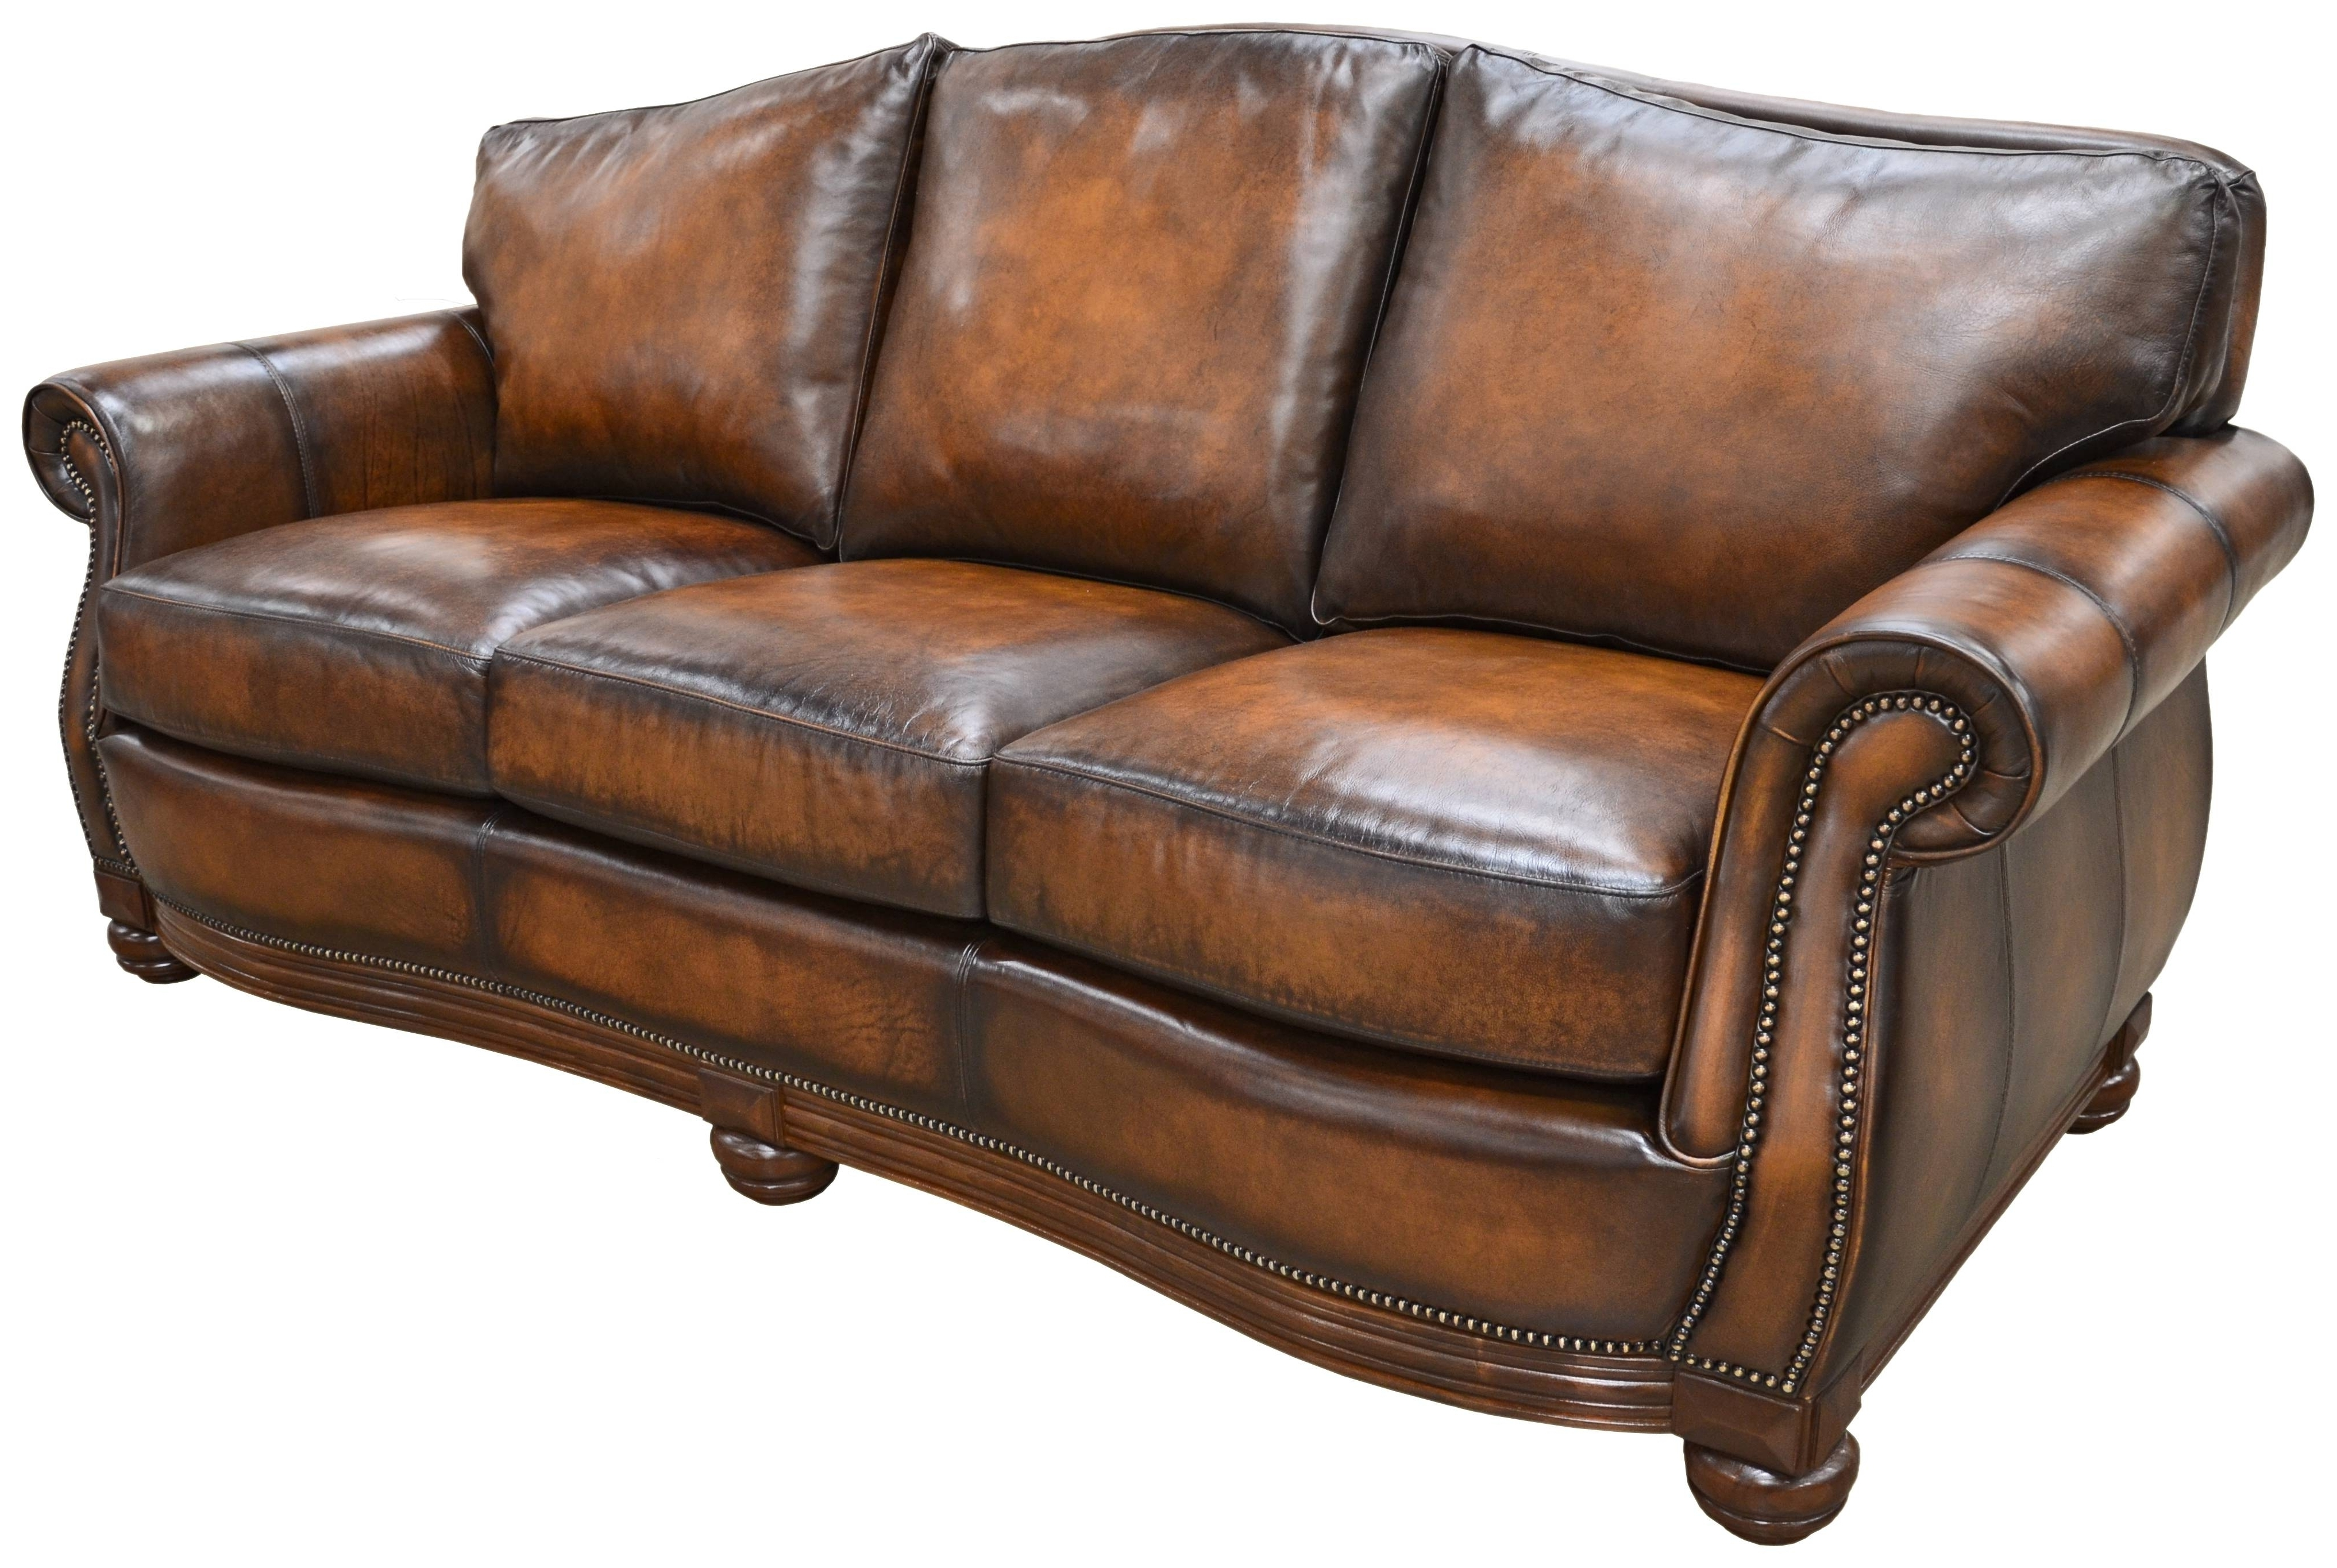 Favorite Aniline Leather Sofas Throughout Aniline Leather Sofa Degreaser • Leather Sofa (View 12 of 20)